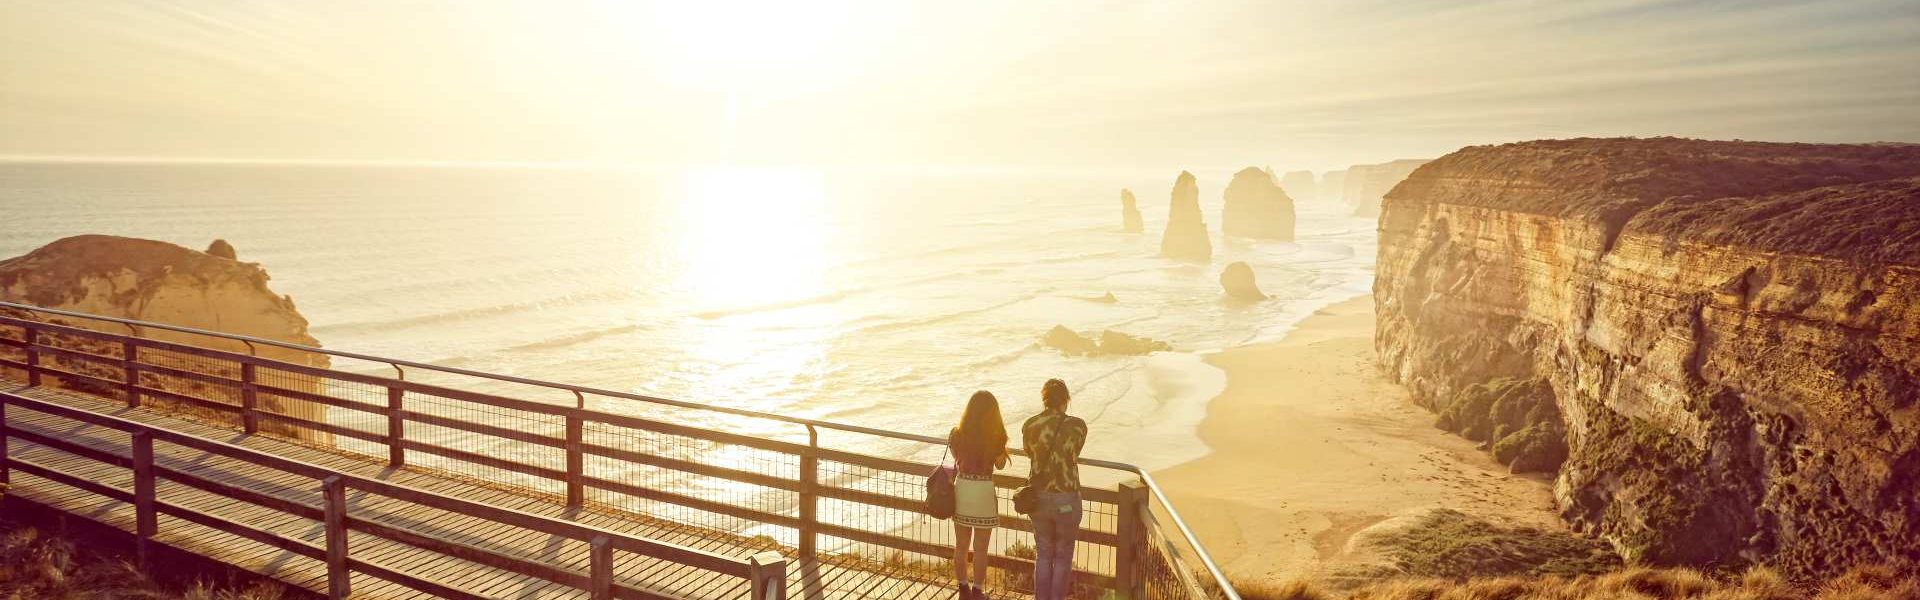 Tourists looking a The 12 Apostles